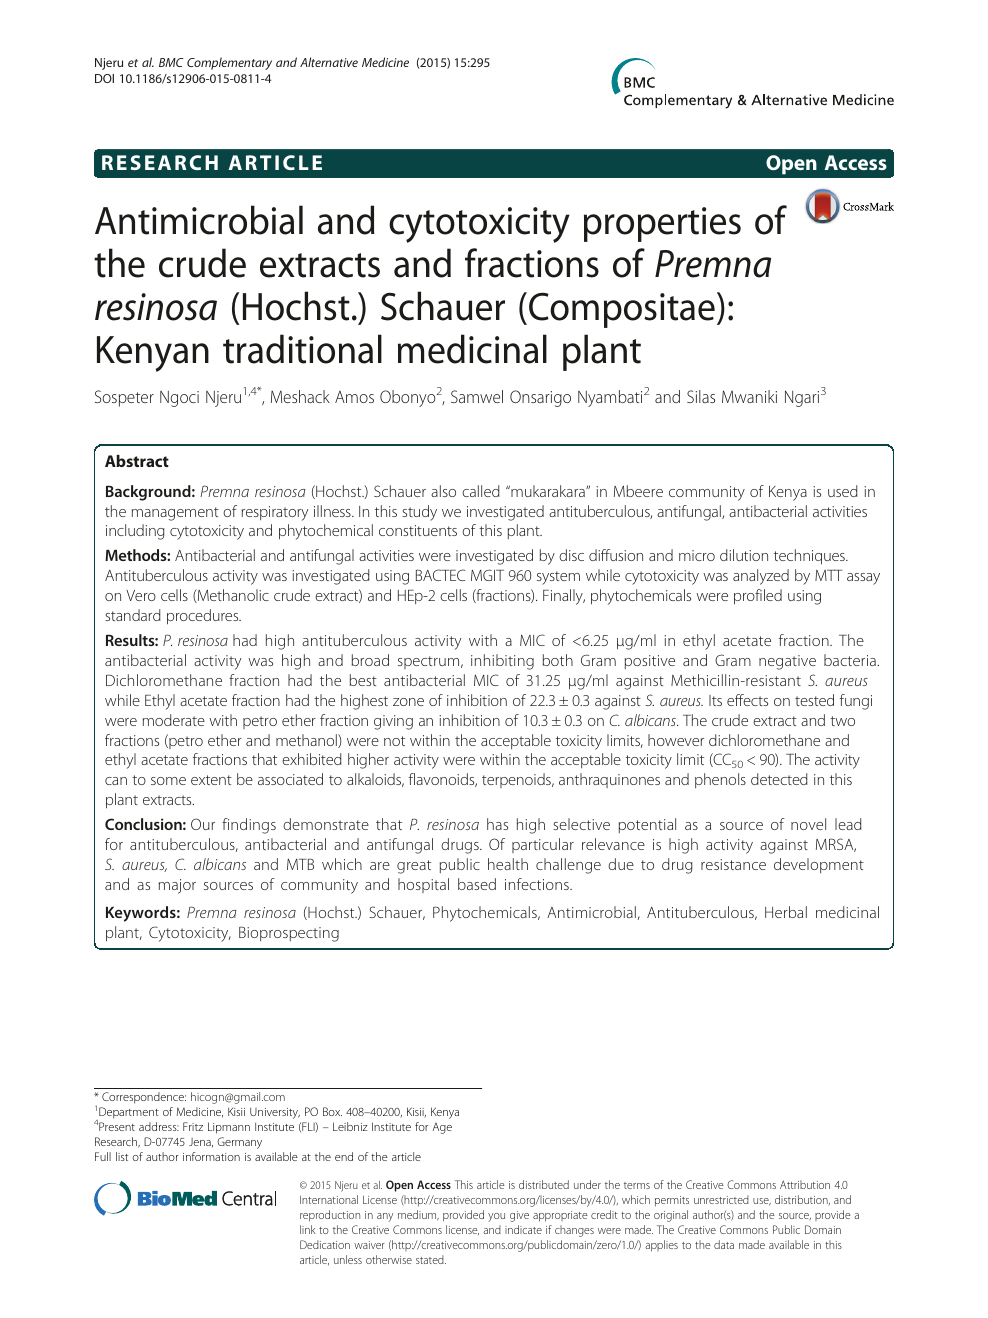 Antimicrobial and cytotoxicity properties of the crude